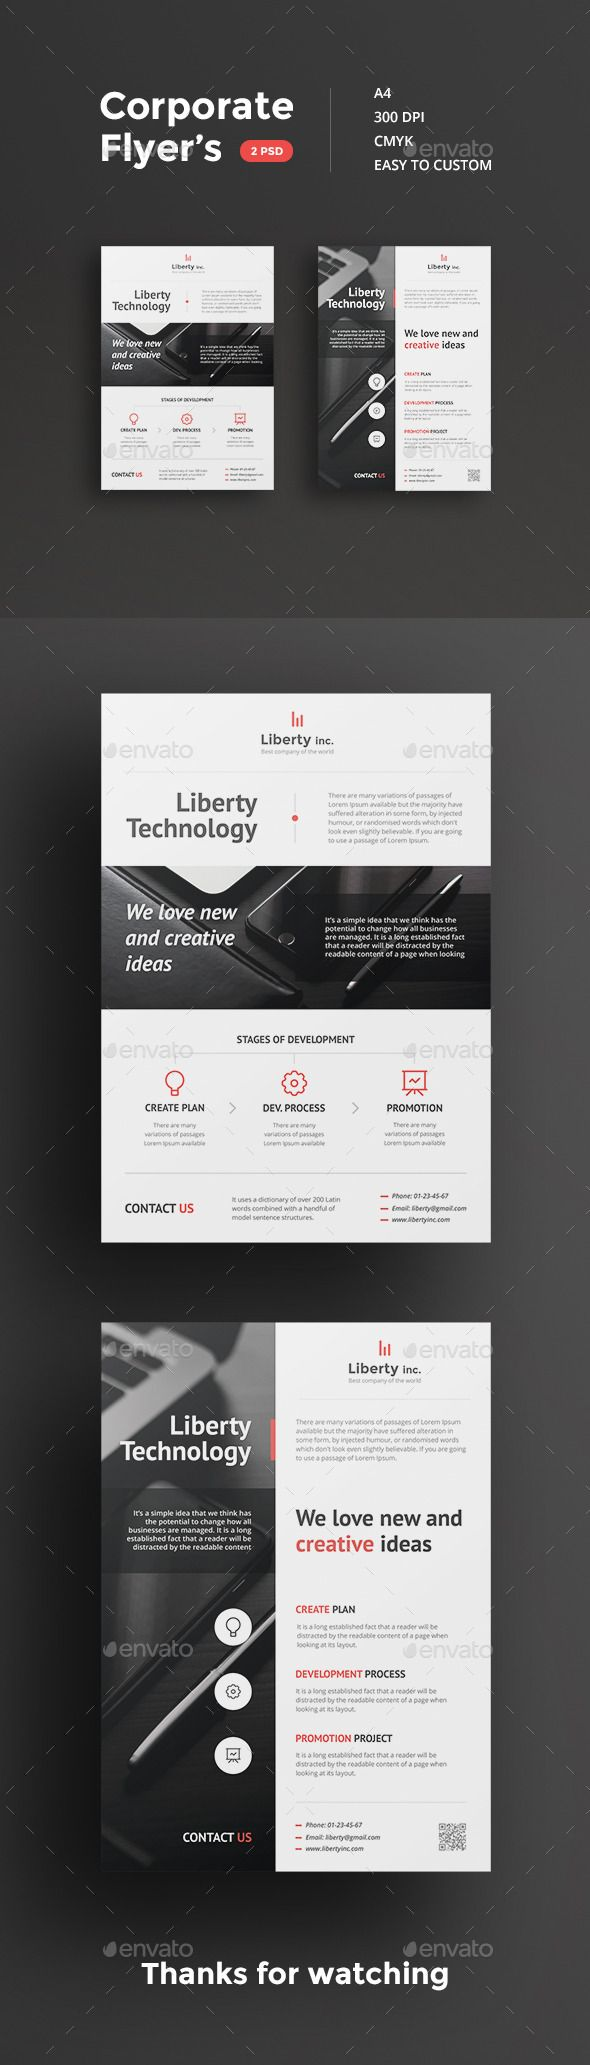 Corporate flyer's made in clean and simple style. Objects easily changed to suit your needs. All files placed in folders, you can easily find the layer you want. Perfect for different companies.